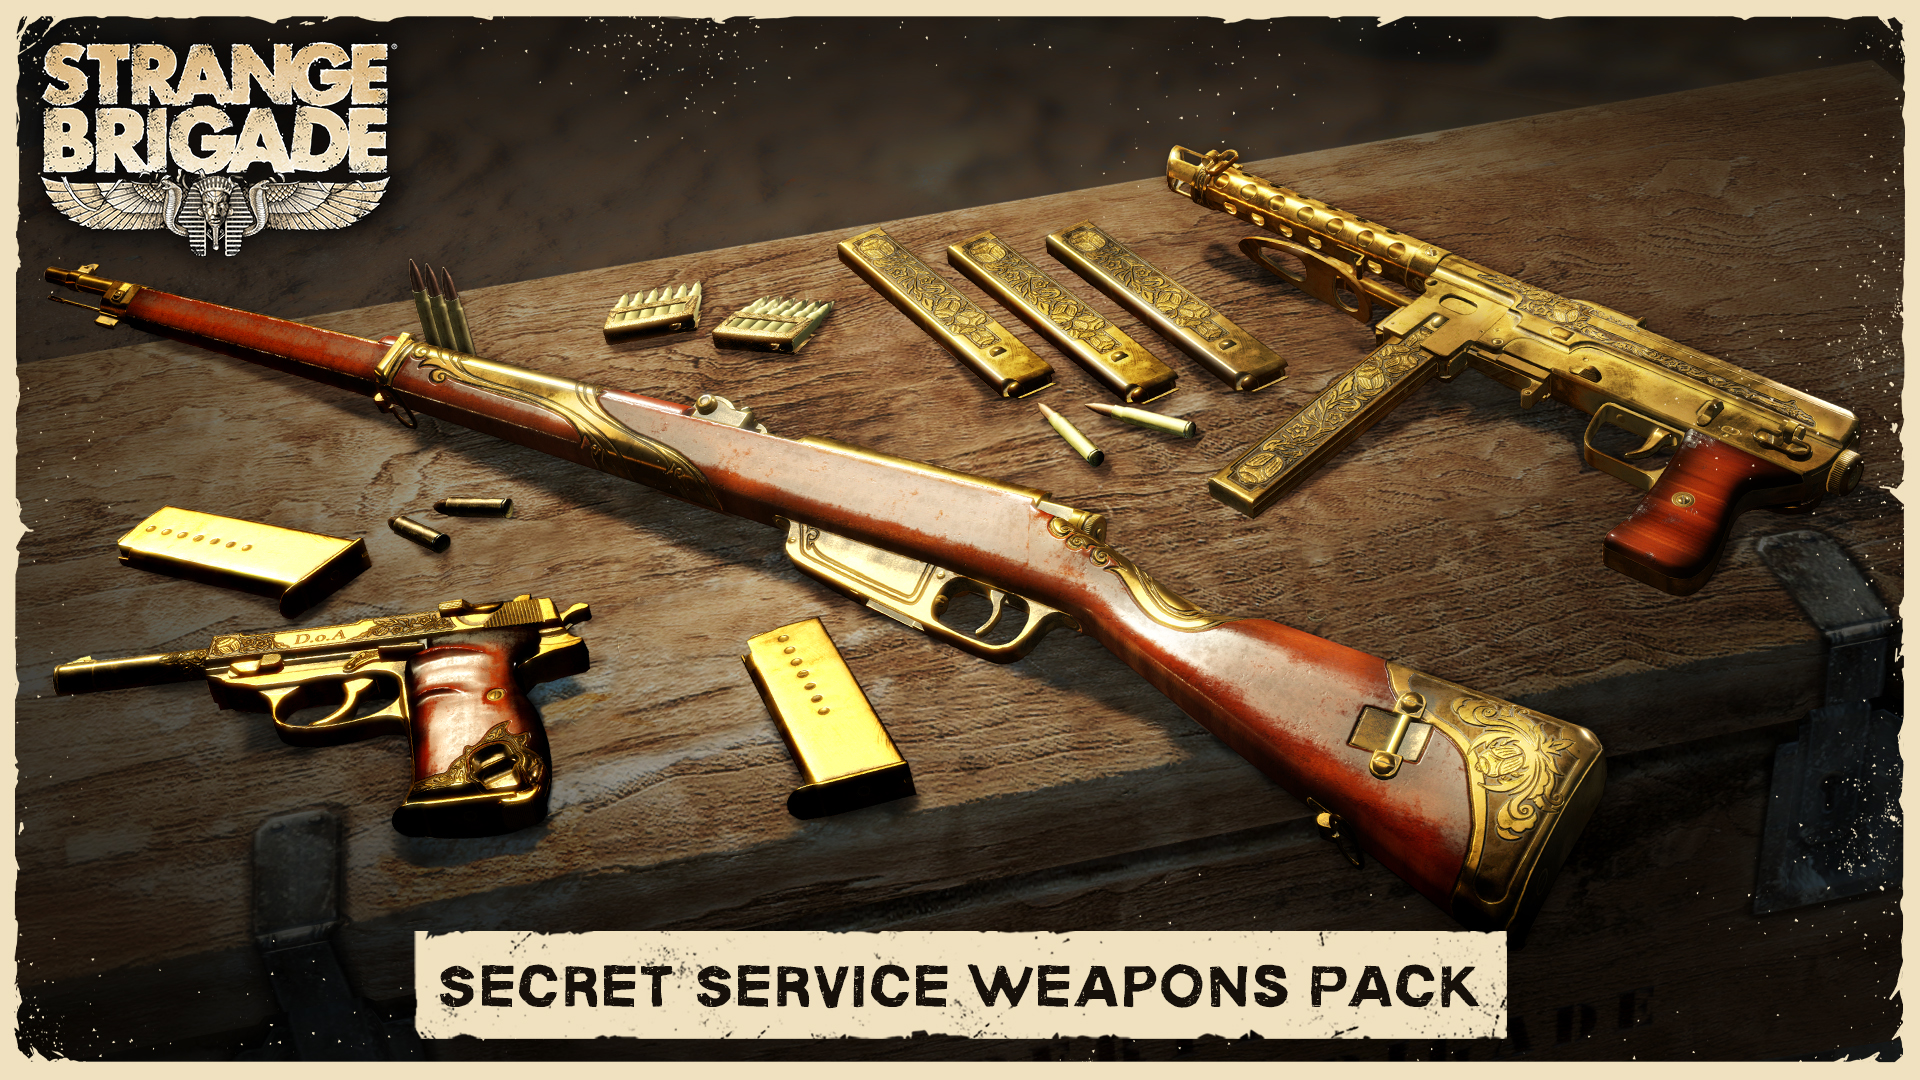 Strange brigade secret service weapons pack 2018 promotional art strange brigade secret service weapons pack screenshot thecheapjerseys Images